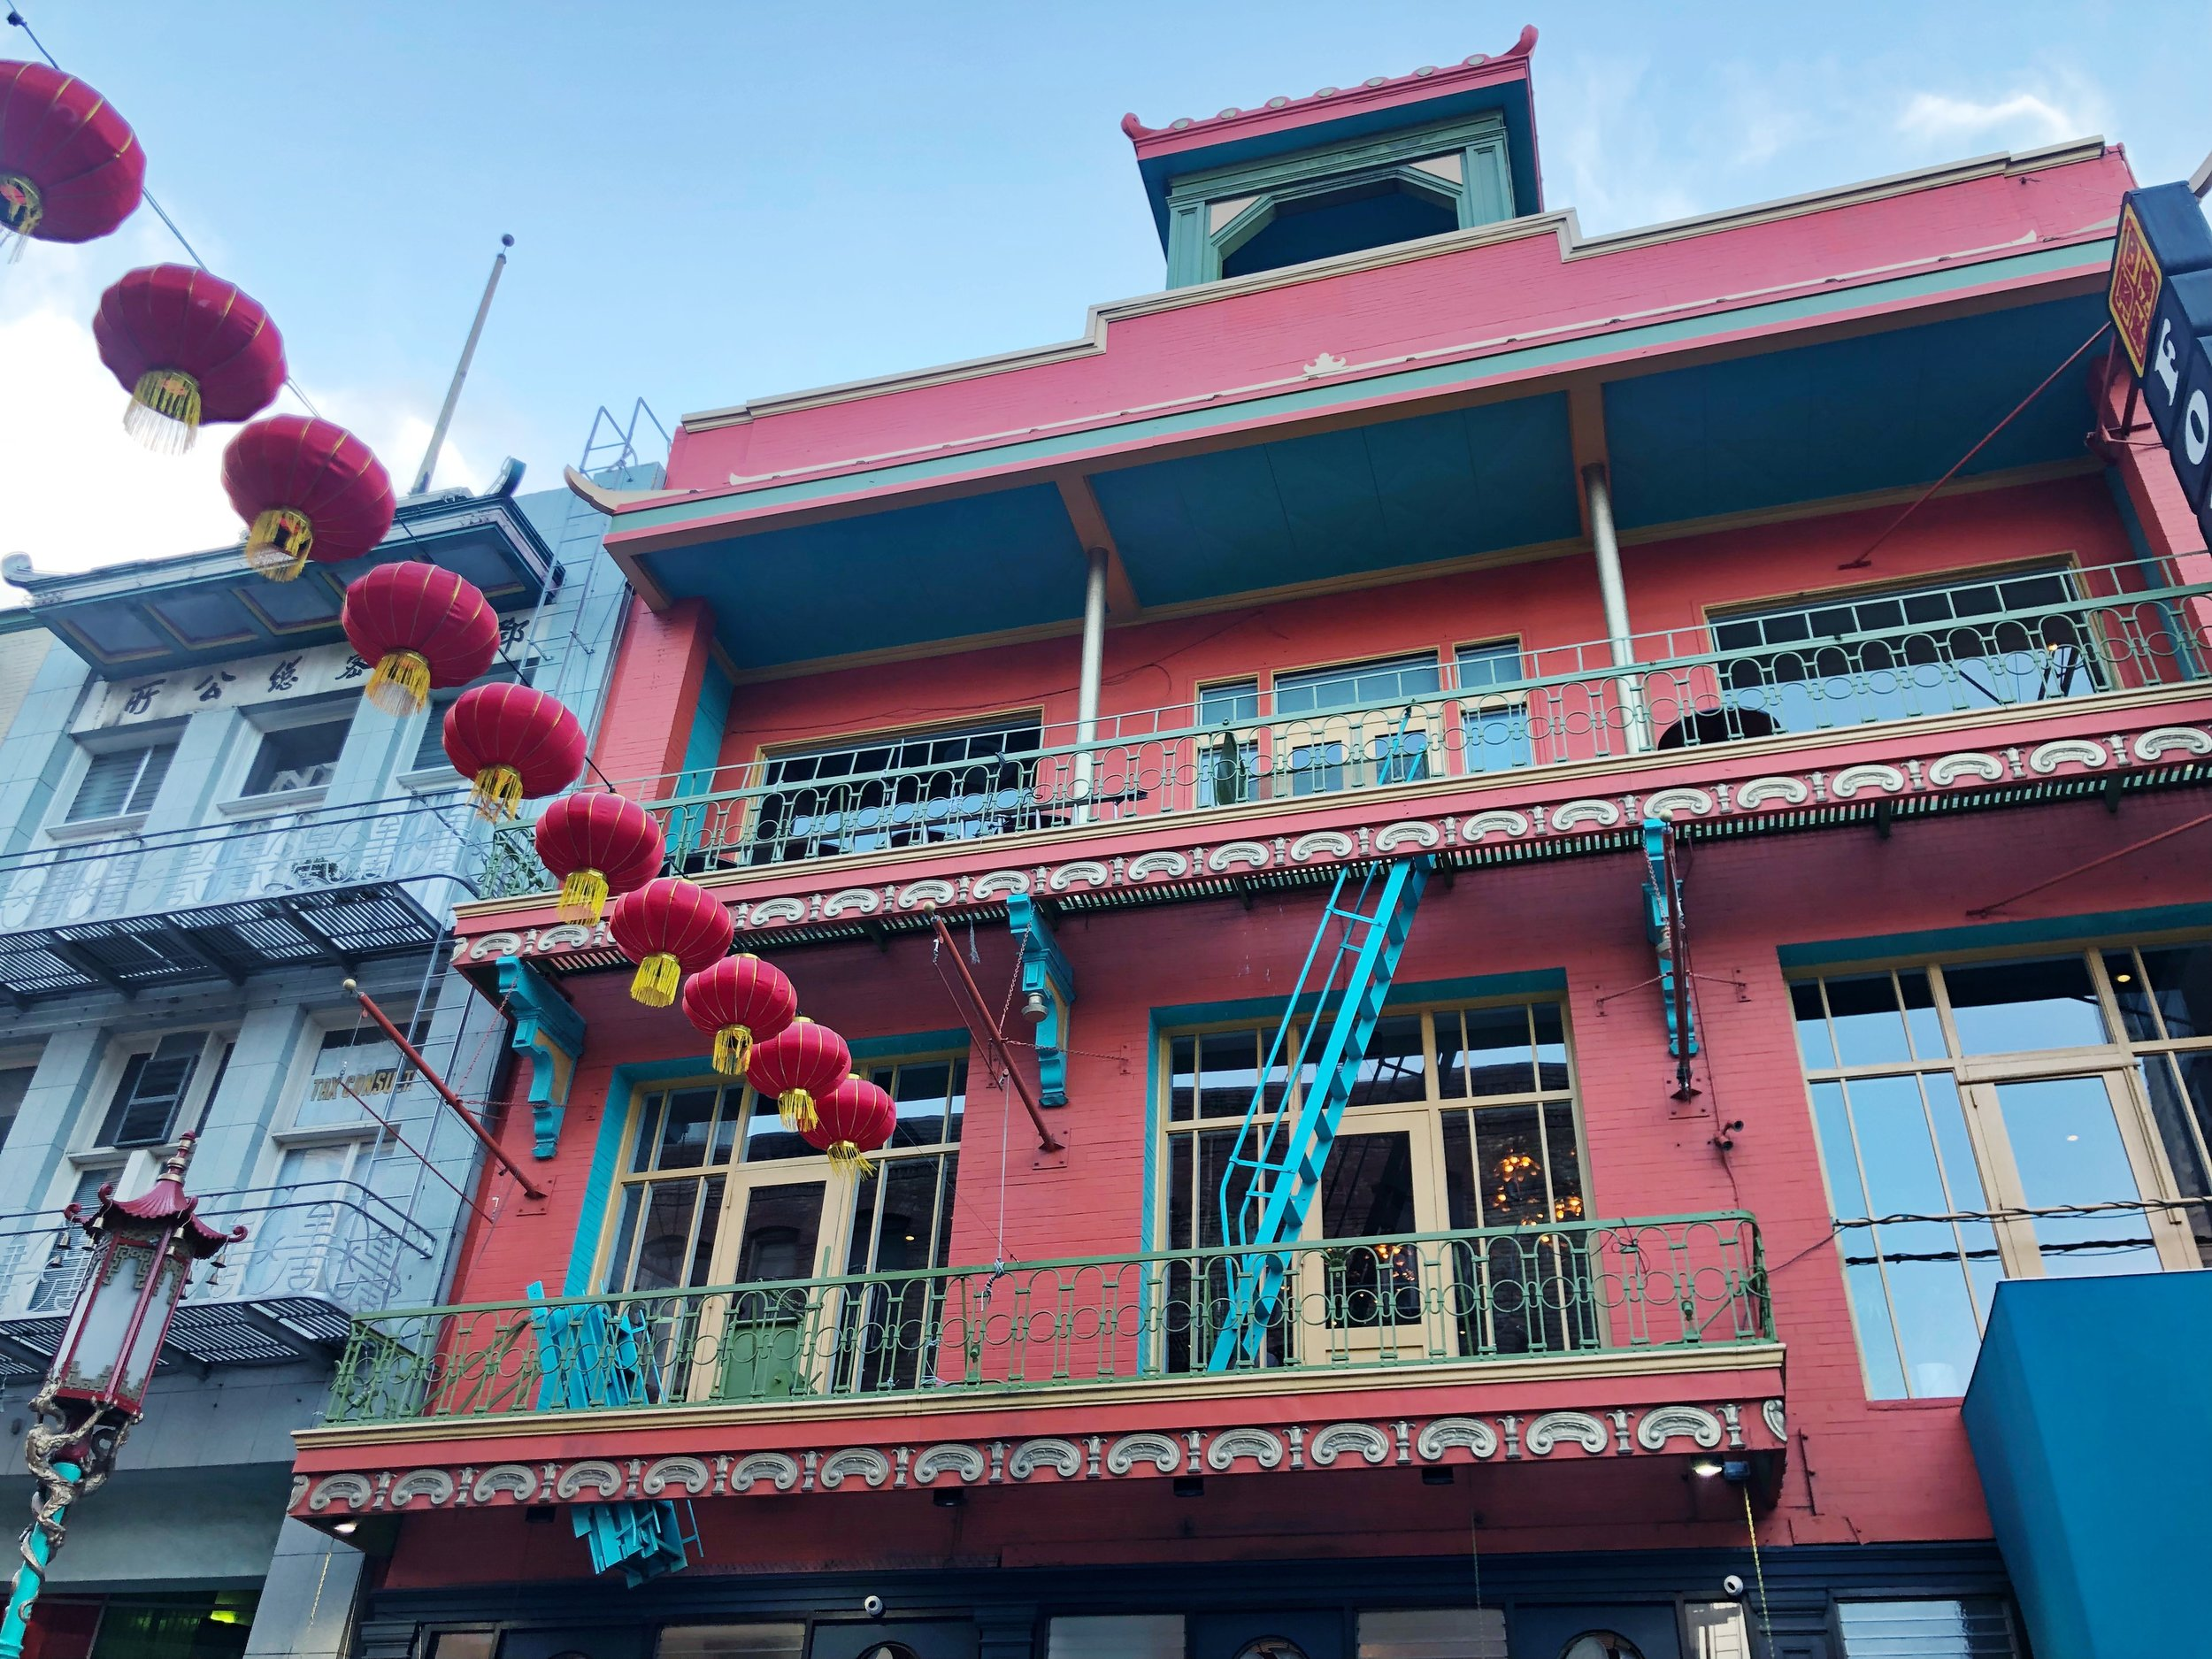 Colorful buildings can be appreciated in San Francisco's Chinatown